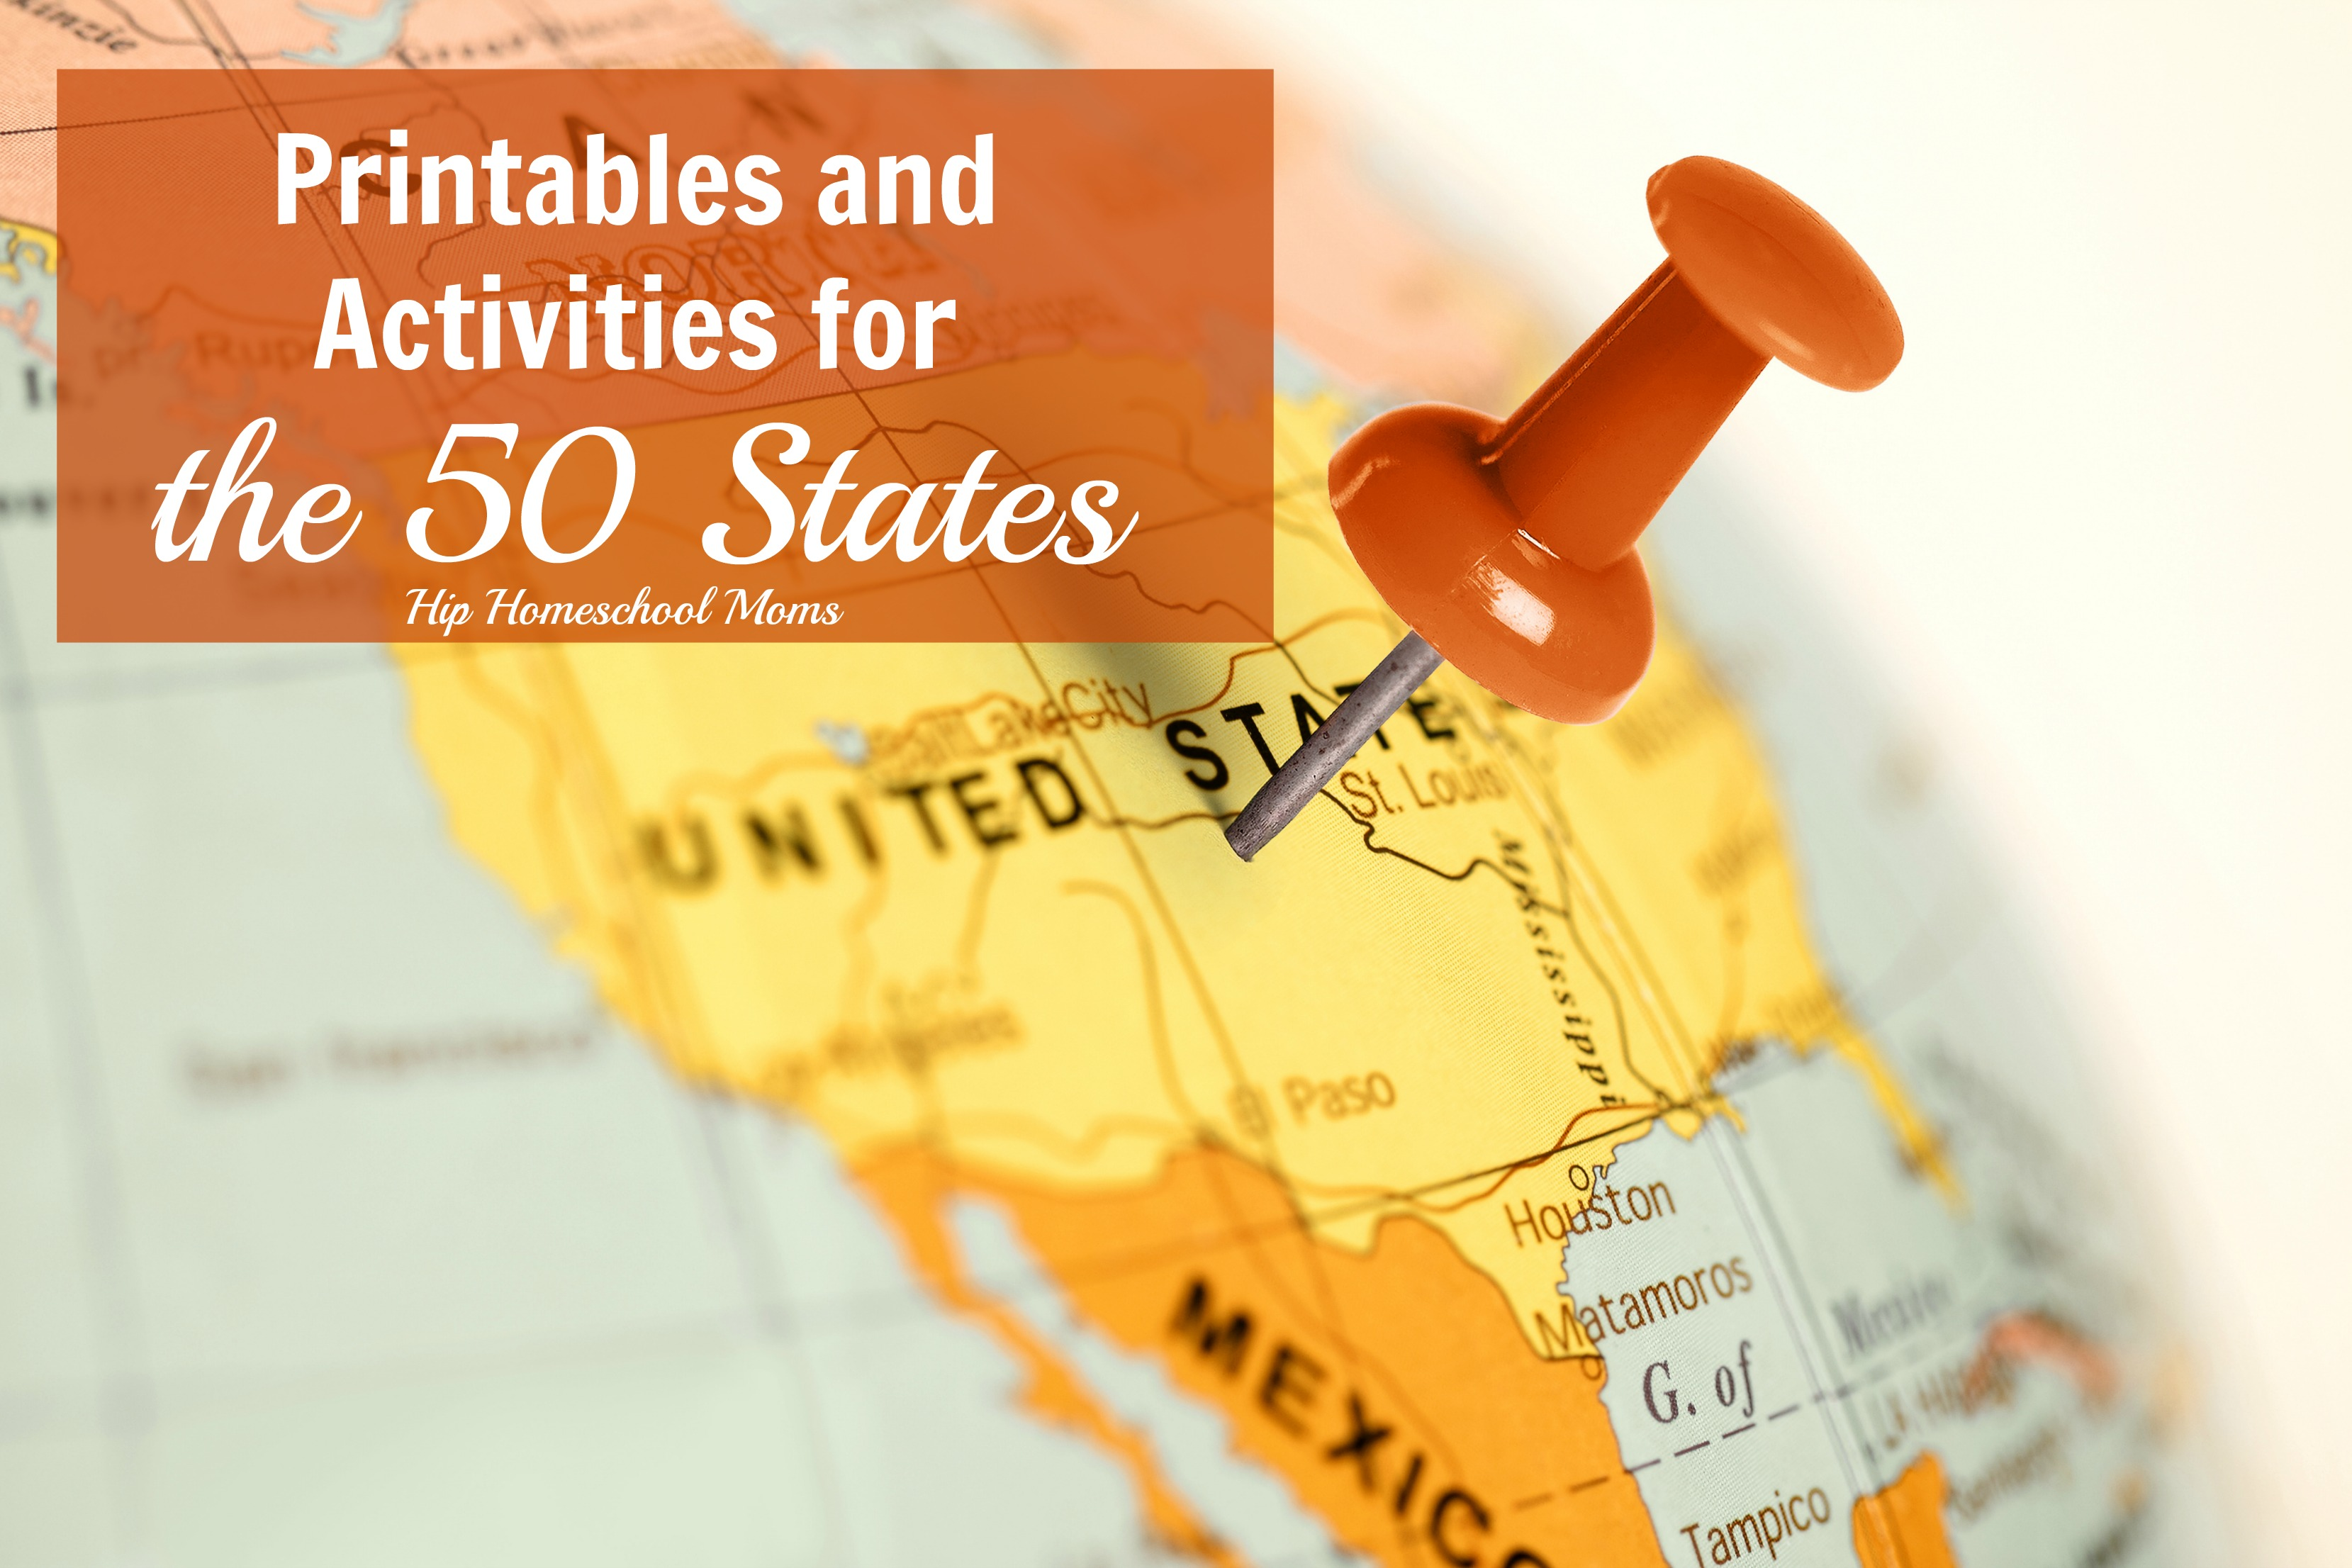 The 50 States Printables And Activities